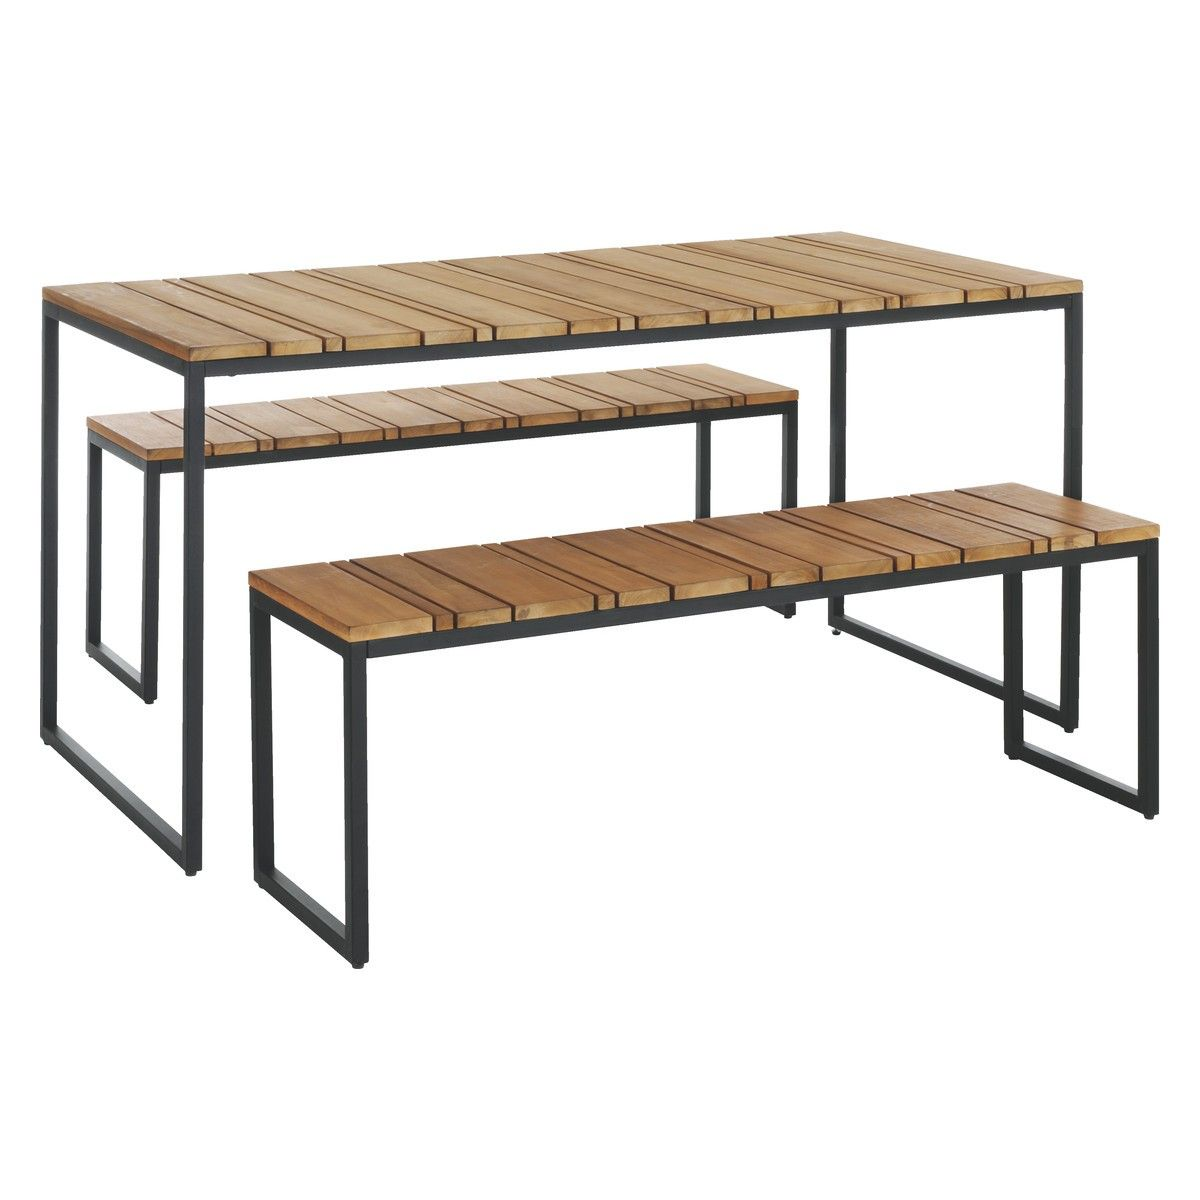 RAVEN Seat Teak And Metal Garden Set Ideas For The House - Teak and metal outdoor table